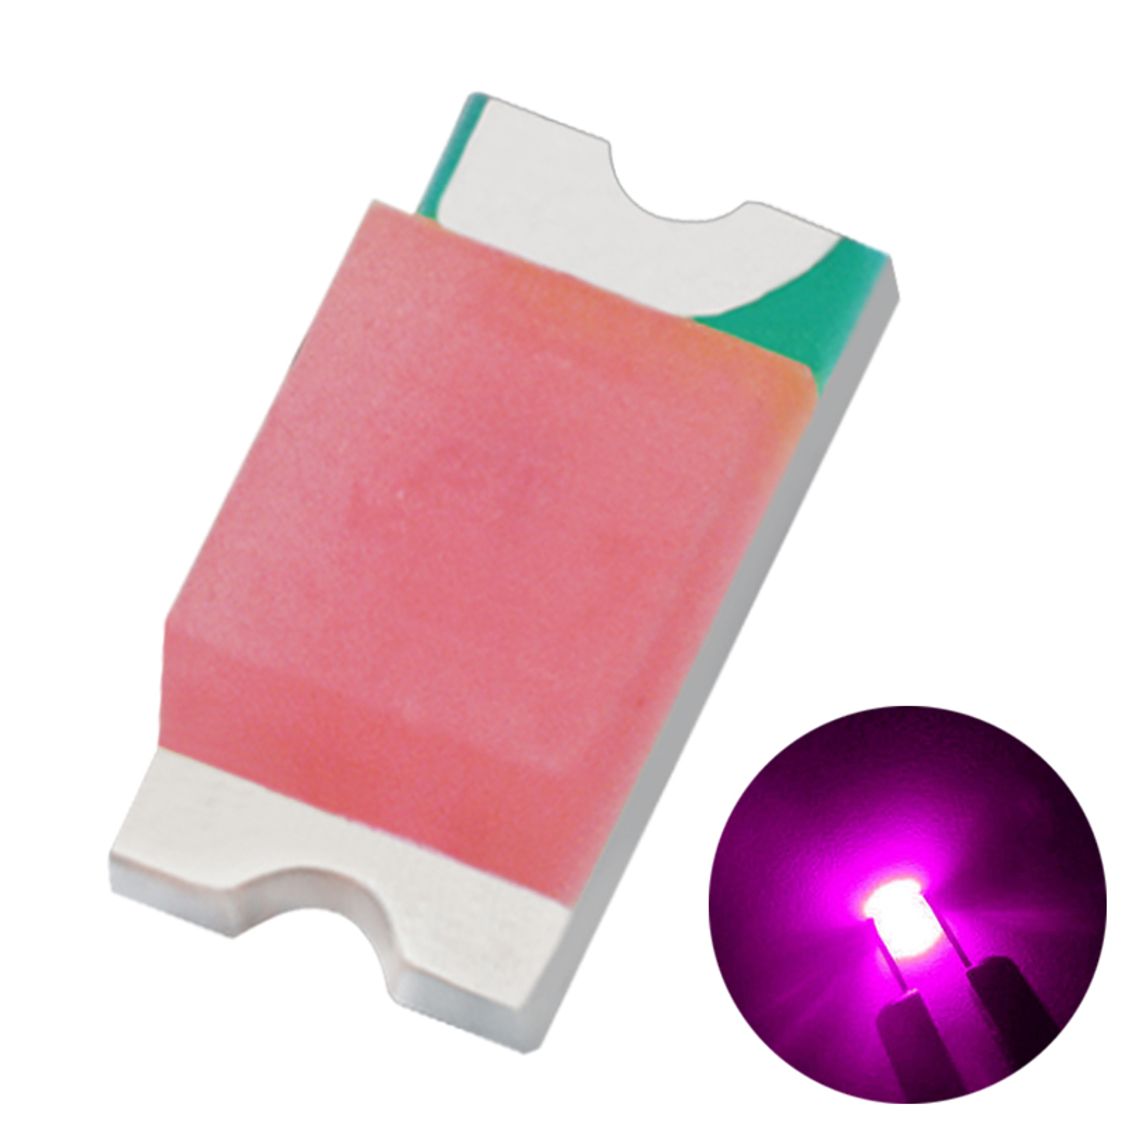 Emitting Color LED Chip SMD Pink China High Quality SMD Led Light 0.06W for furniture